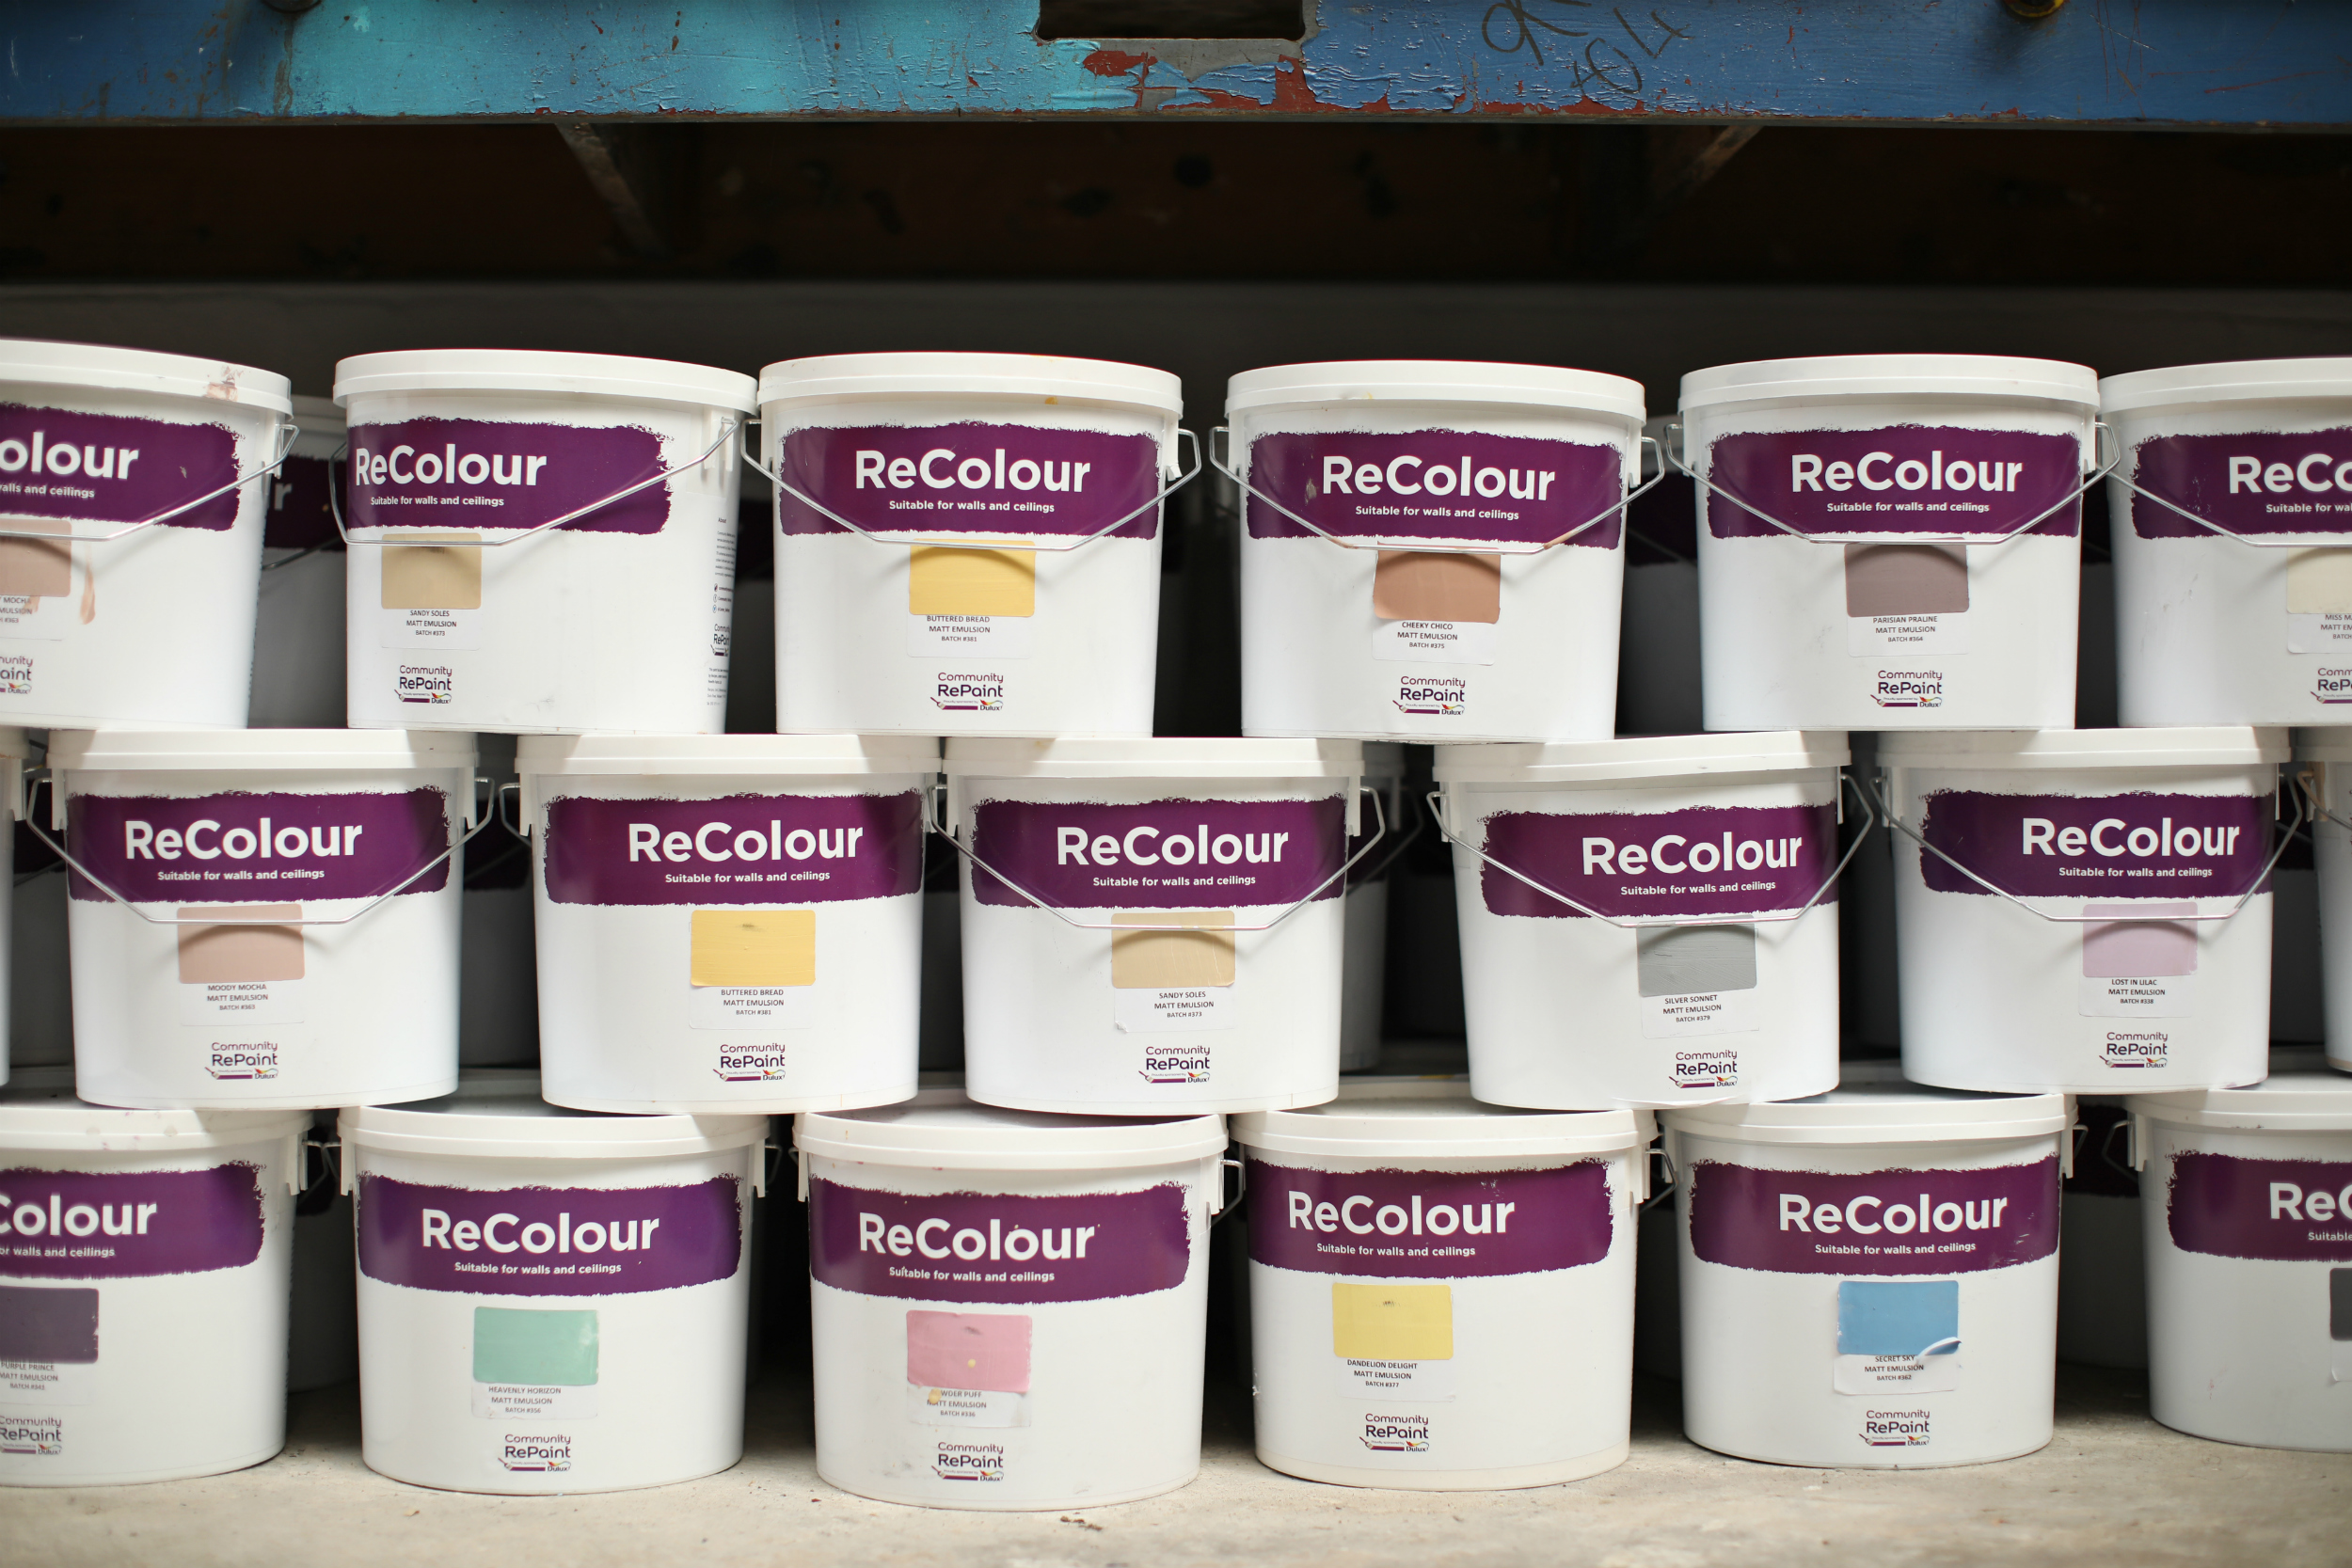 A photo of a range of our low cost and environmentally friendly paint. The ReColour matt emulsion paint and silk emulsion paint is sold in 5 litre plastic containers.